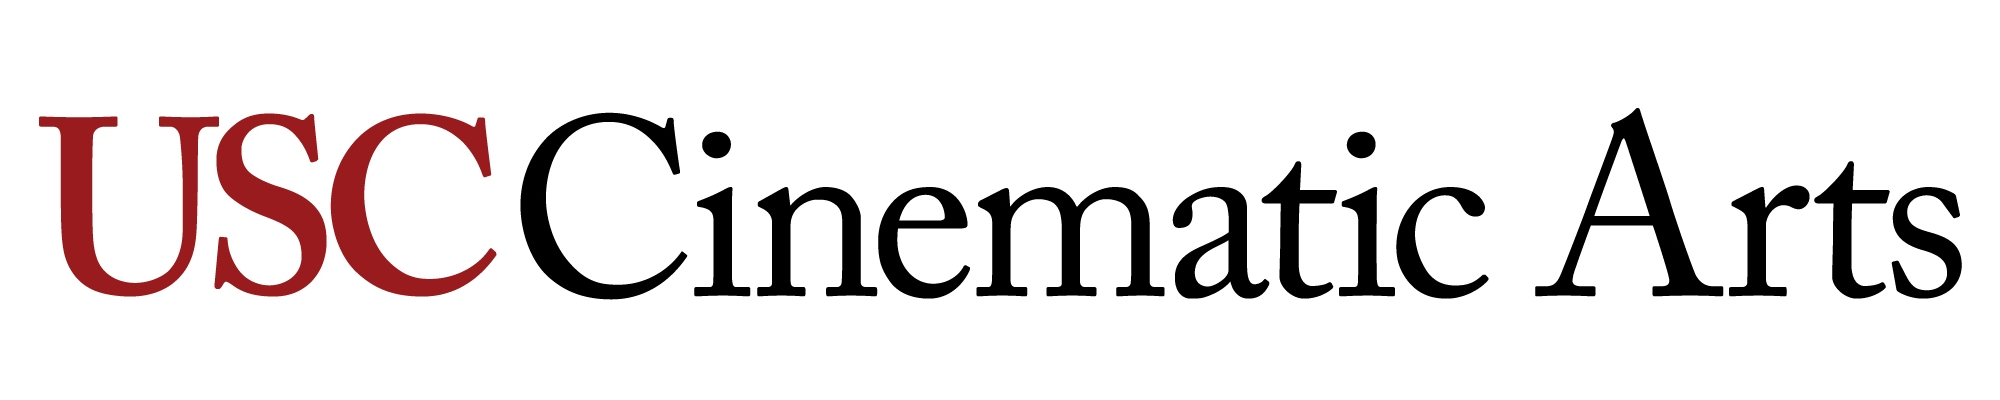 Logo - School of Cinematic Arts